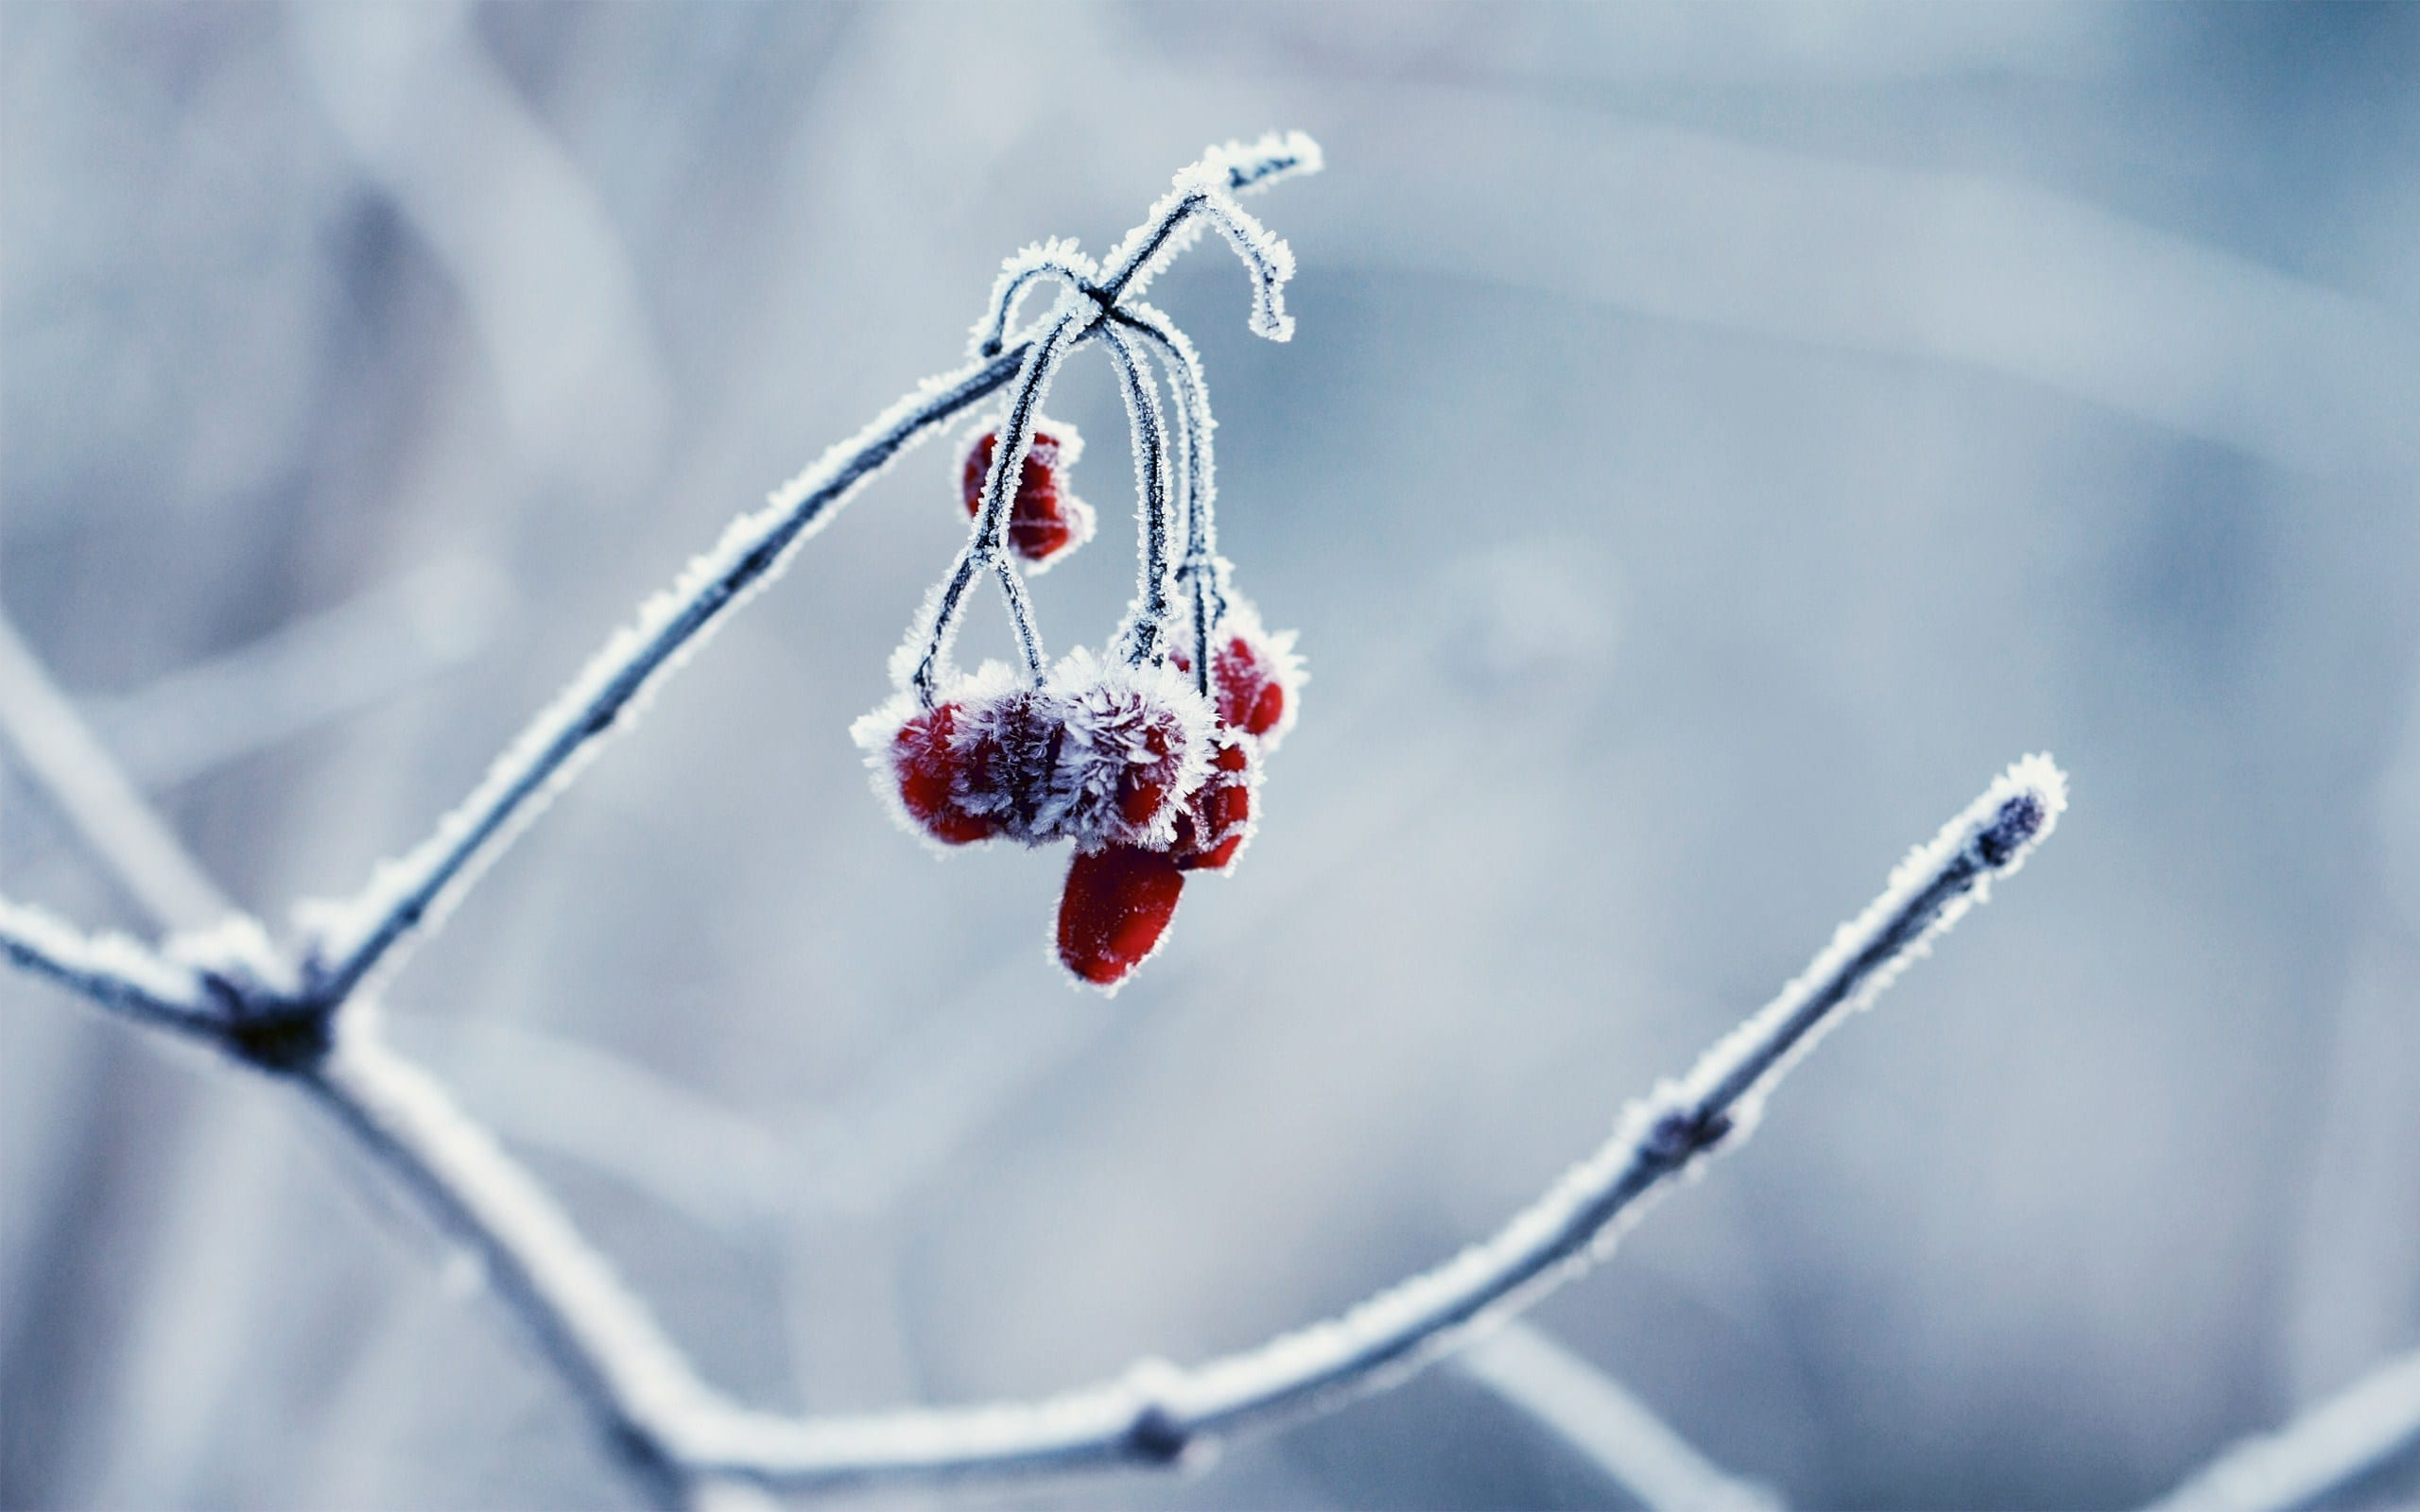 The Frozen Cherry by IrvingGFM Widescreen (3)